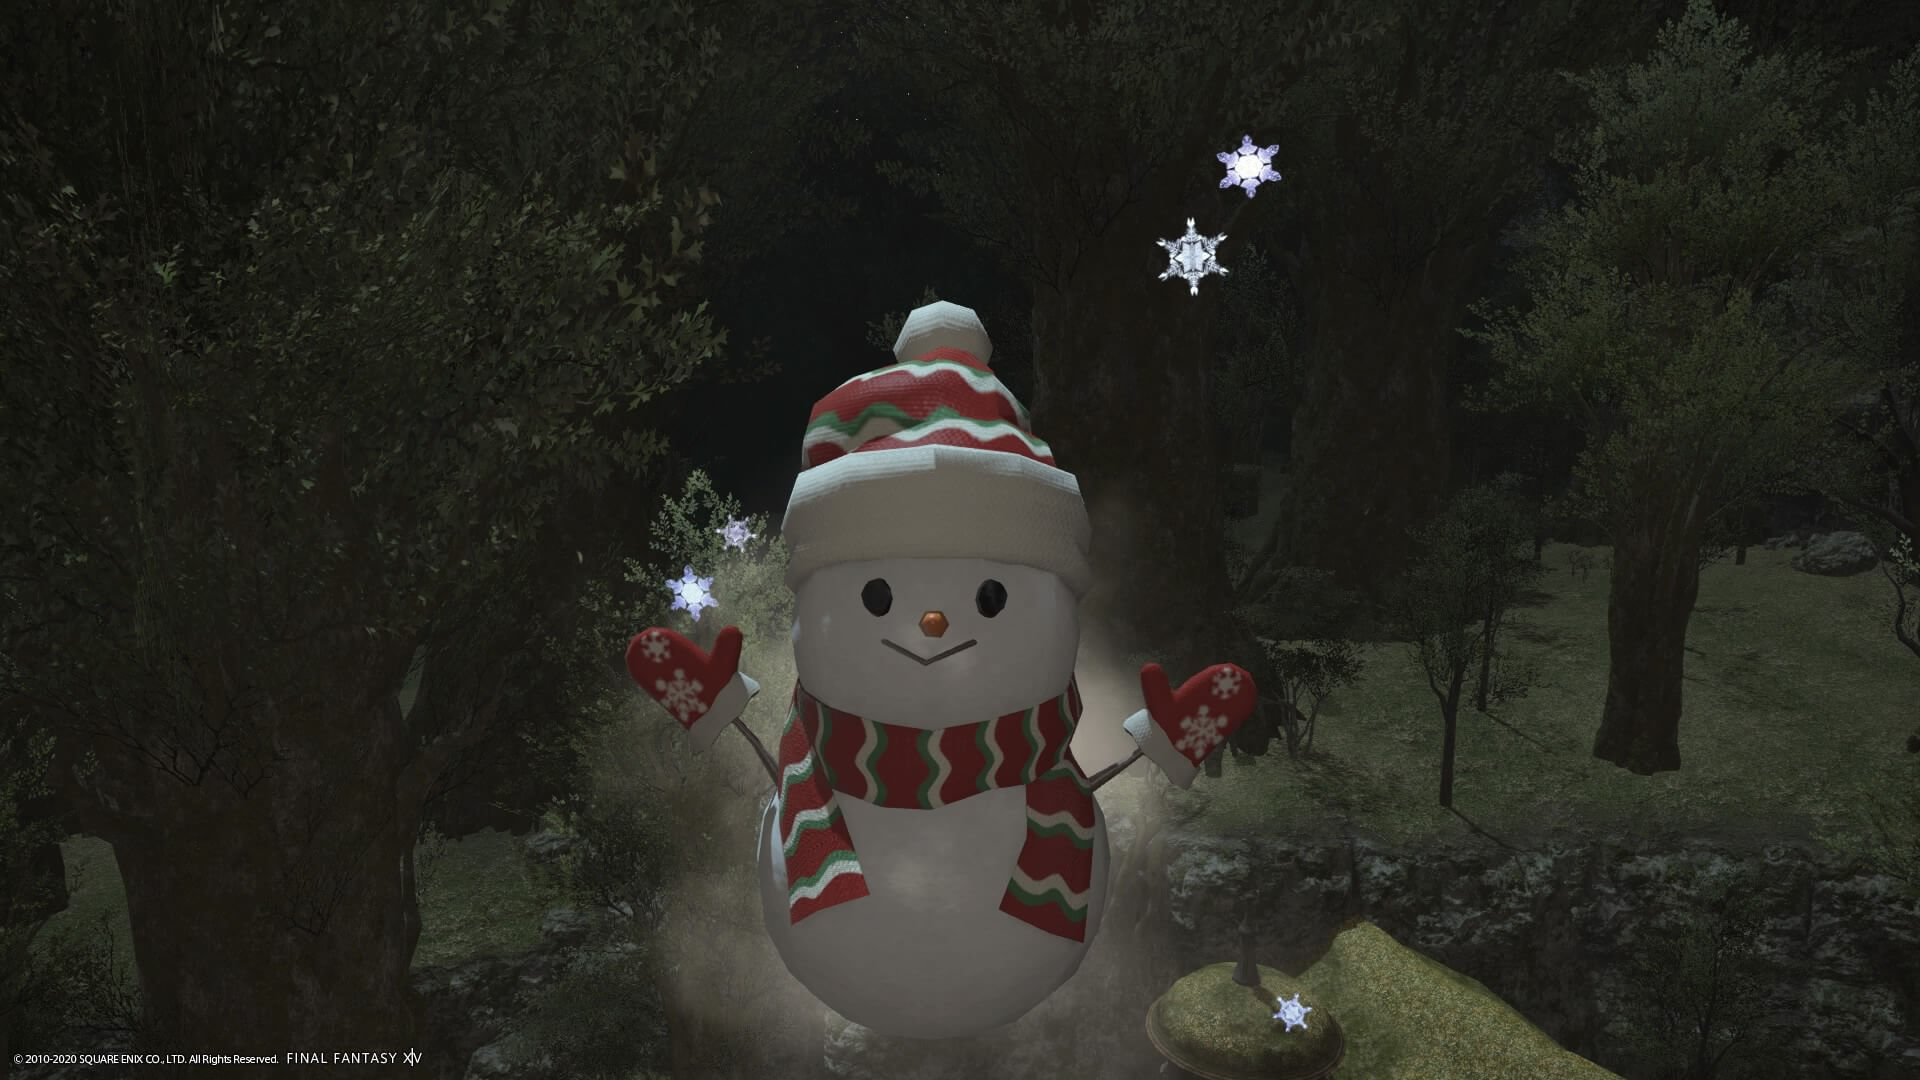 FFXIV: Shadowbringers Guide - How to Get the Snowman Mount